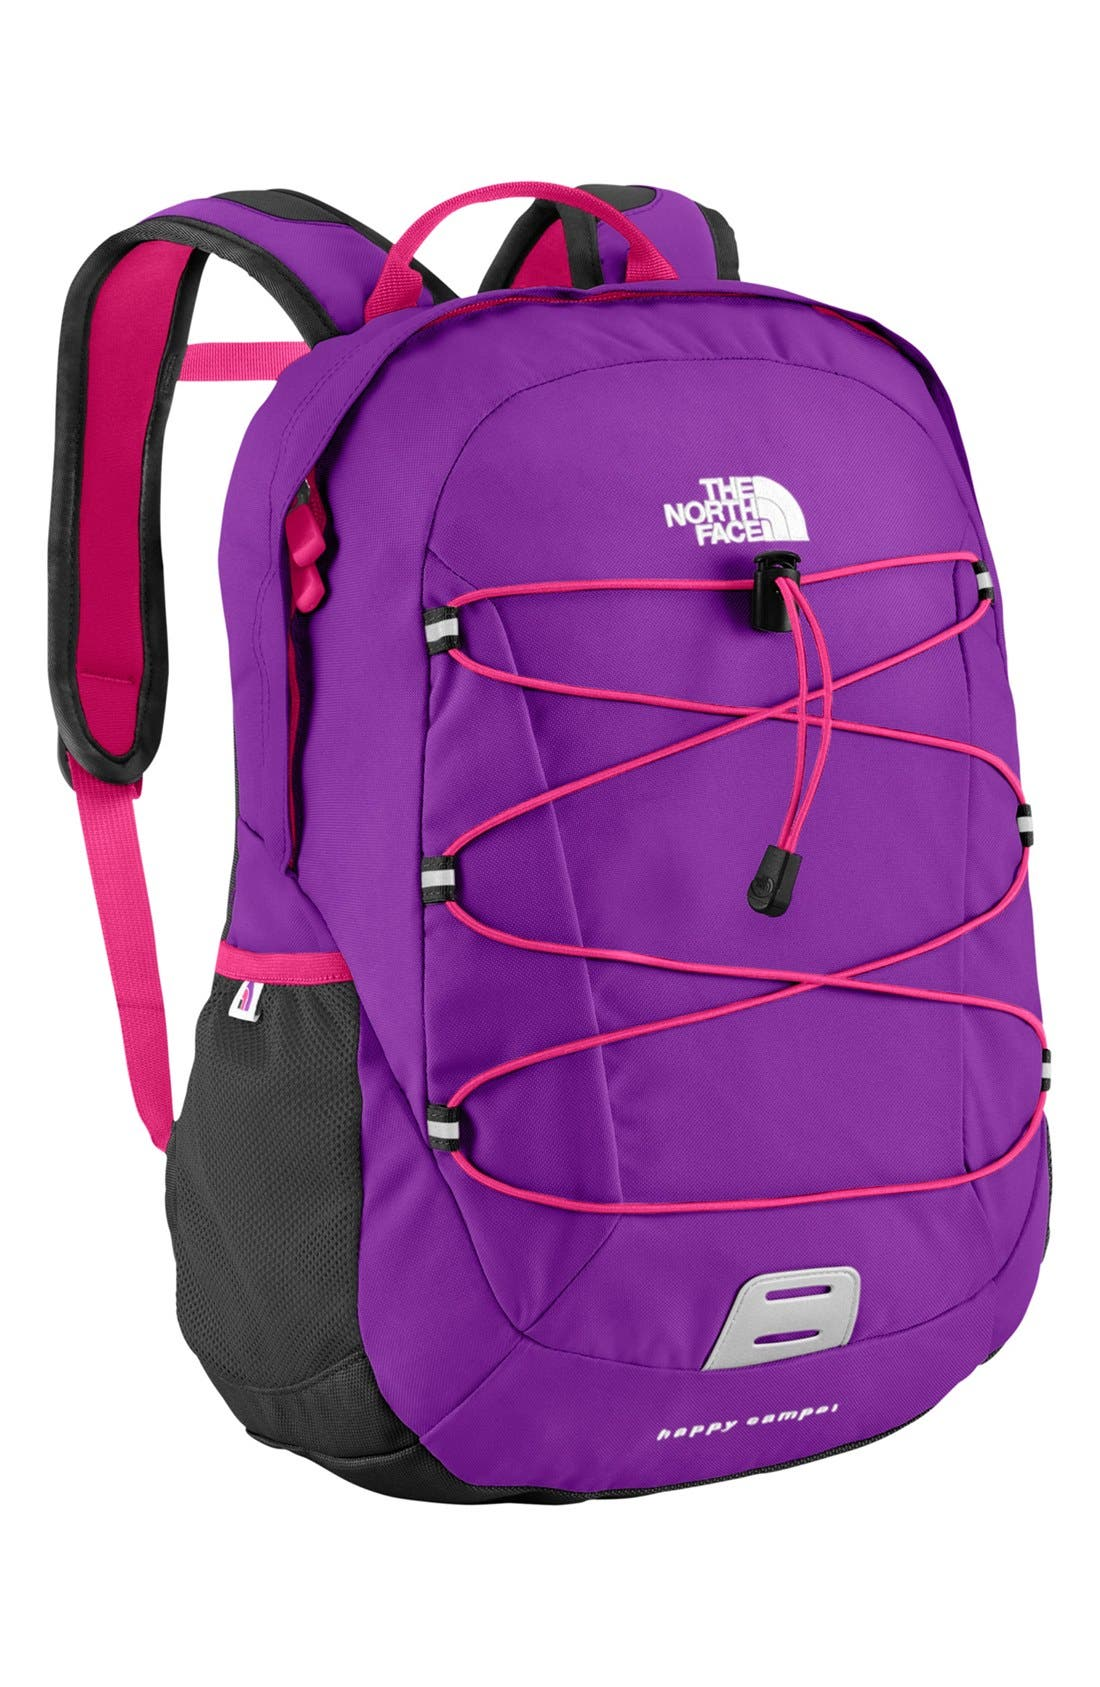 Alternate Image 1 Selected - The North Face 'Happy Camper' Backpack (Girls)